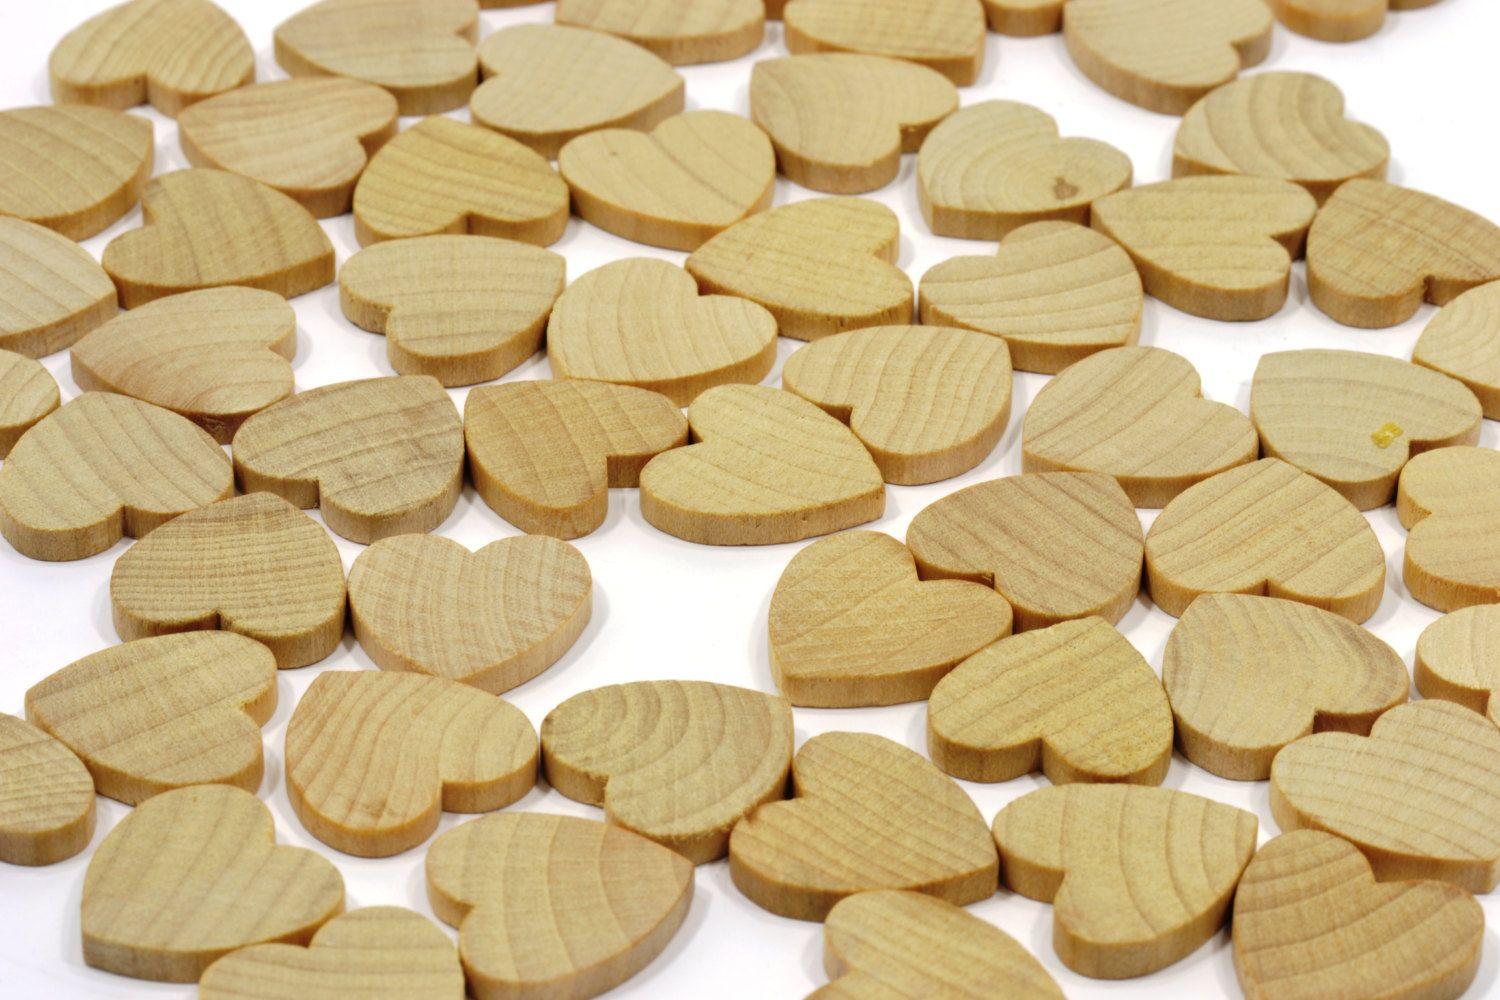 50 Wooden Hearts 3 4 Quot Small Wooden Hearts Unfinished Hardwood Wedding Table Decorations Weddin Wooden Hearts Wood Heart Wedding Wedding Table Decorations